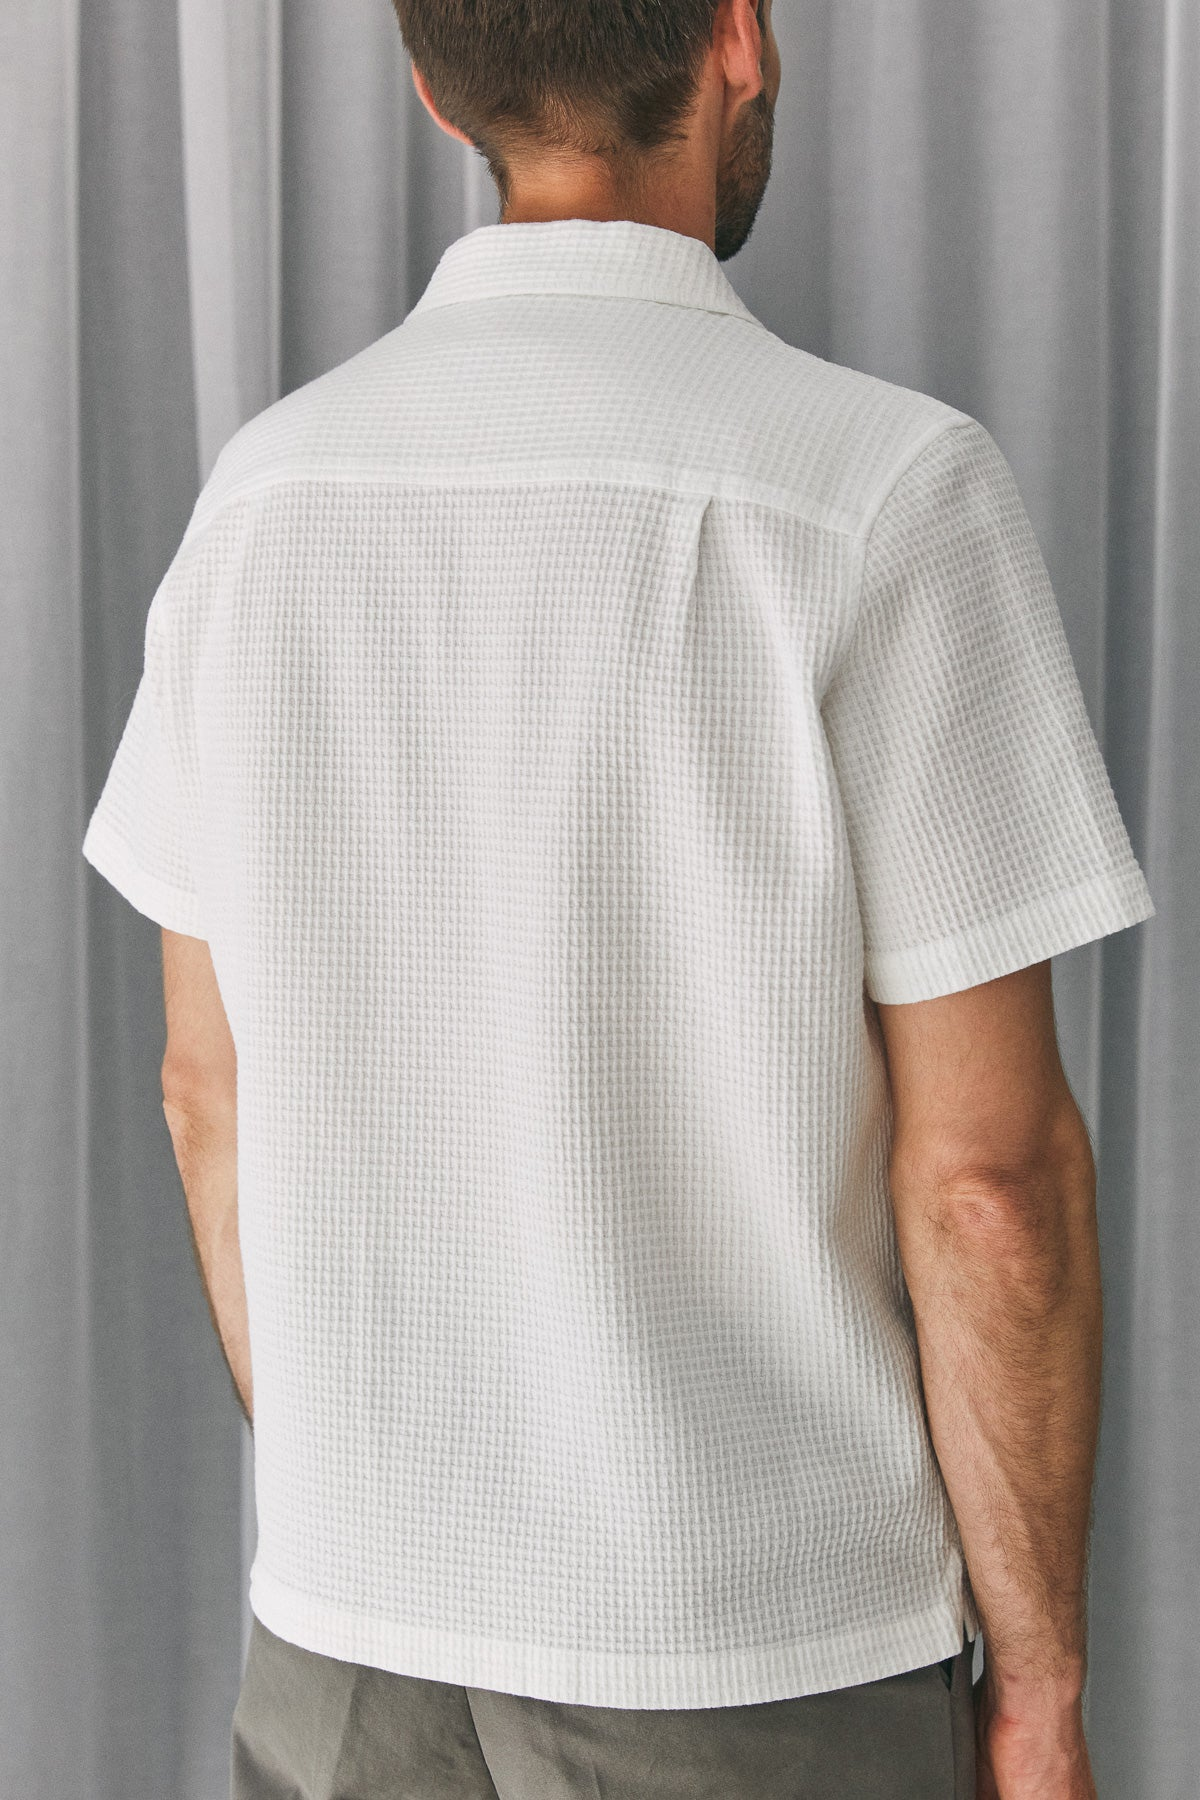 KUNO shortsleeve shirt eco crepe white